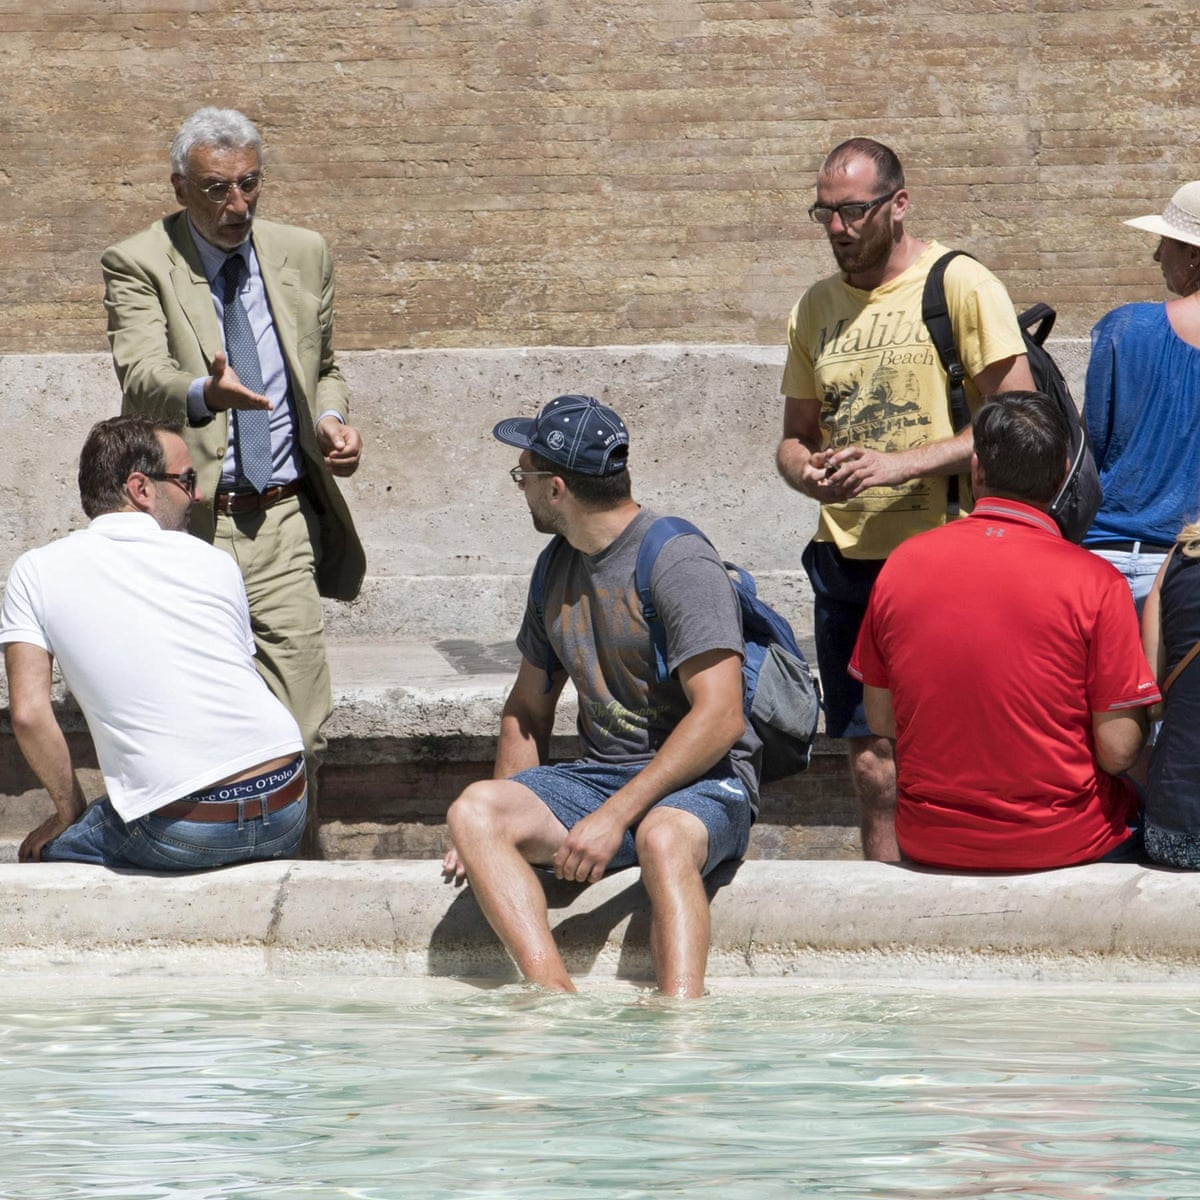 Trevi Levy Rome Imposes Fines For Frolicking At Famous Fountains Italy The Guardian